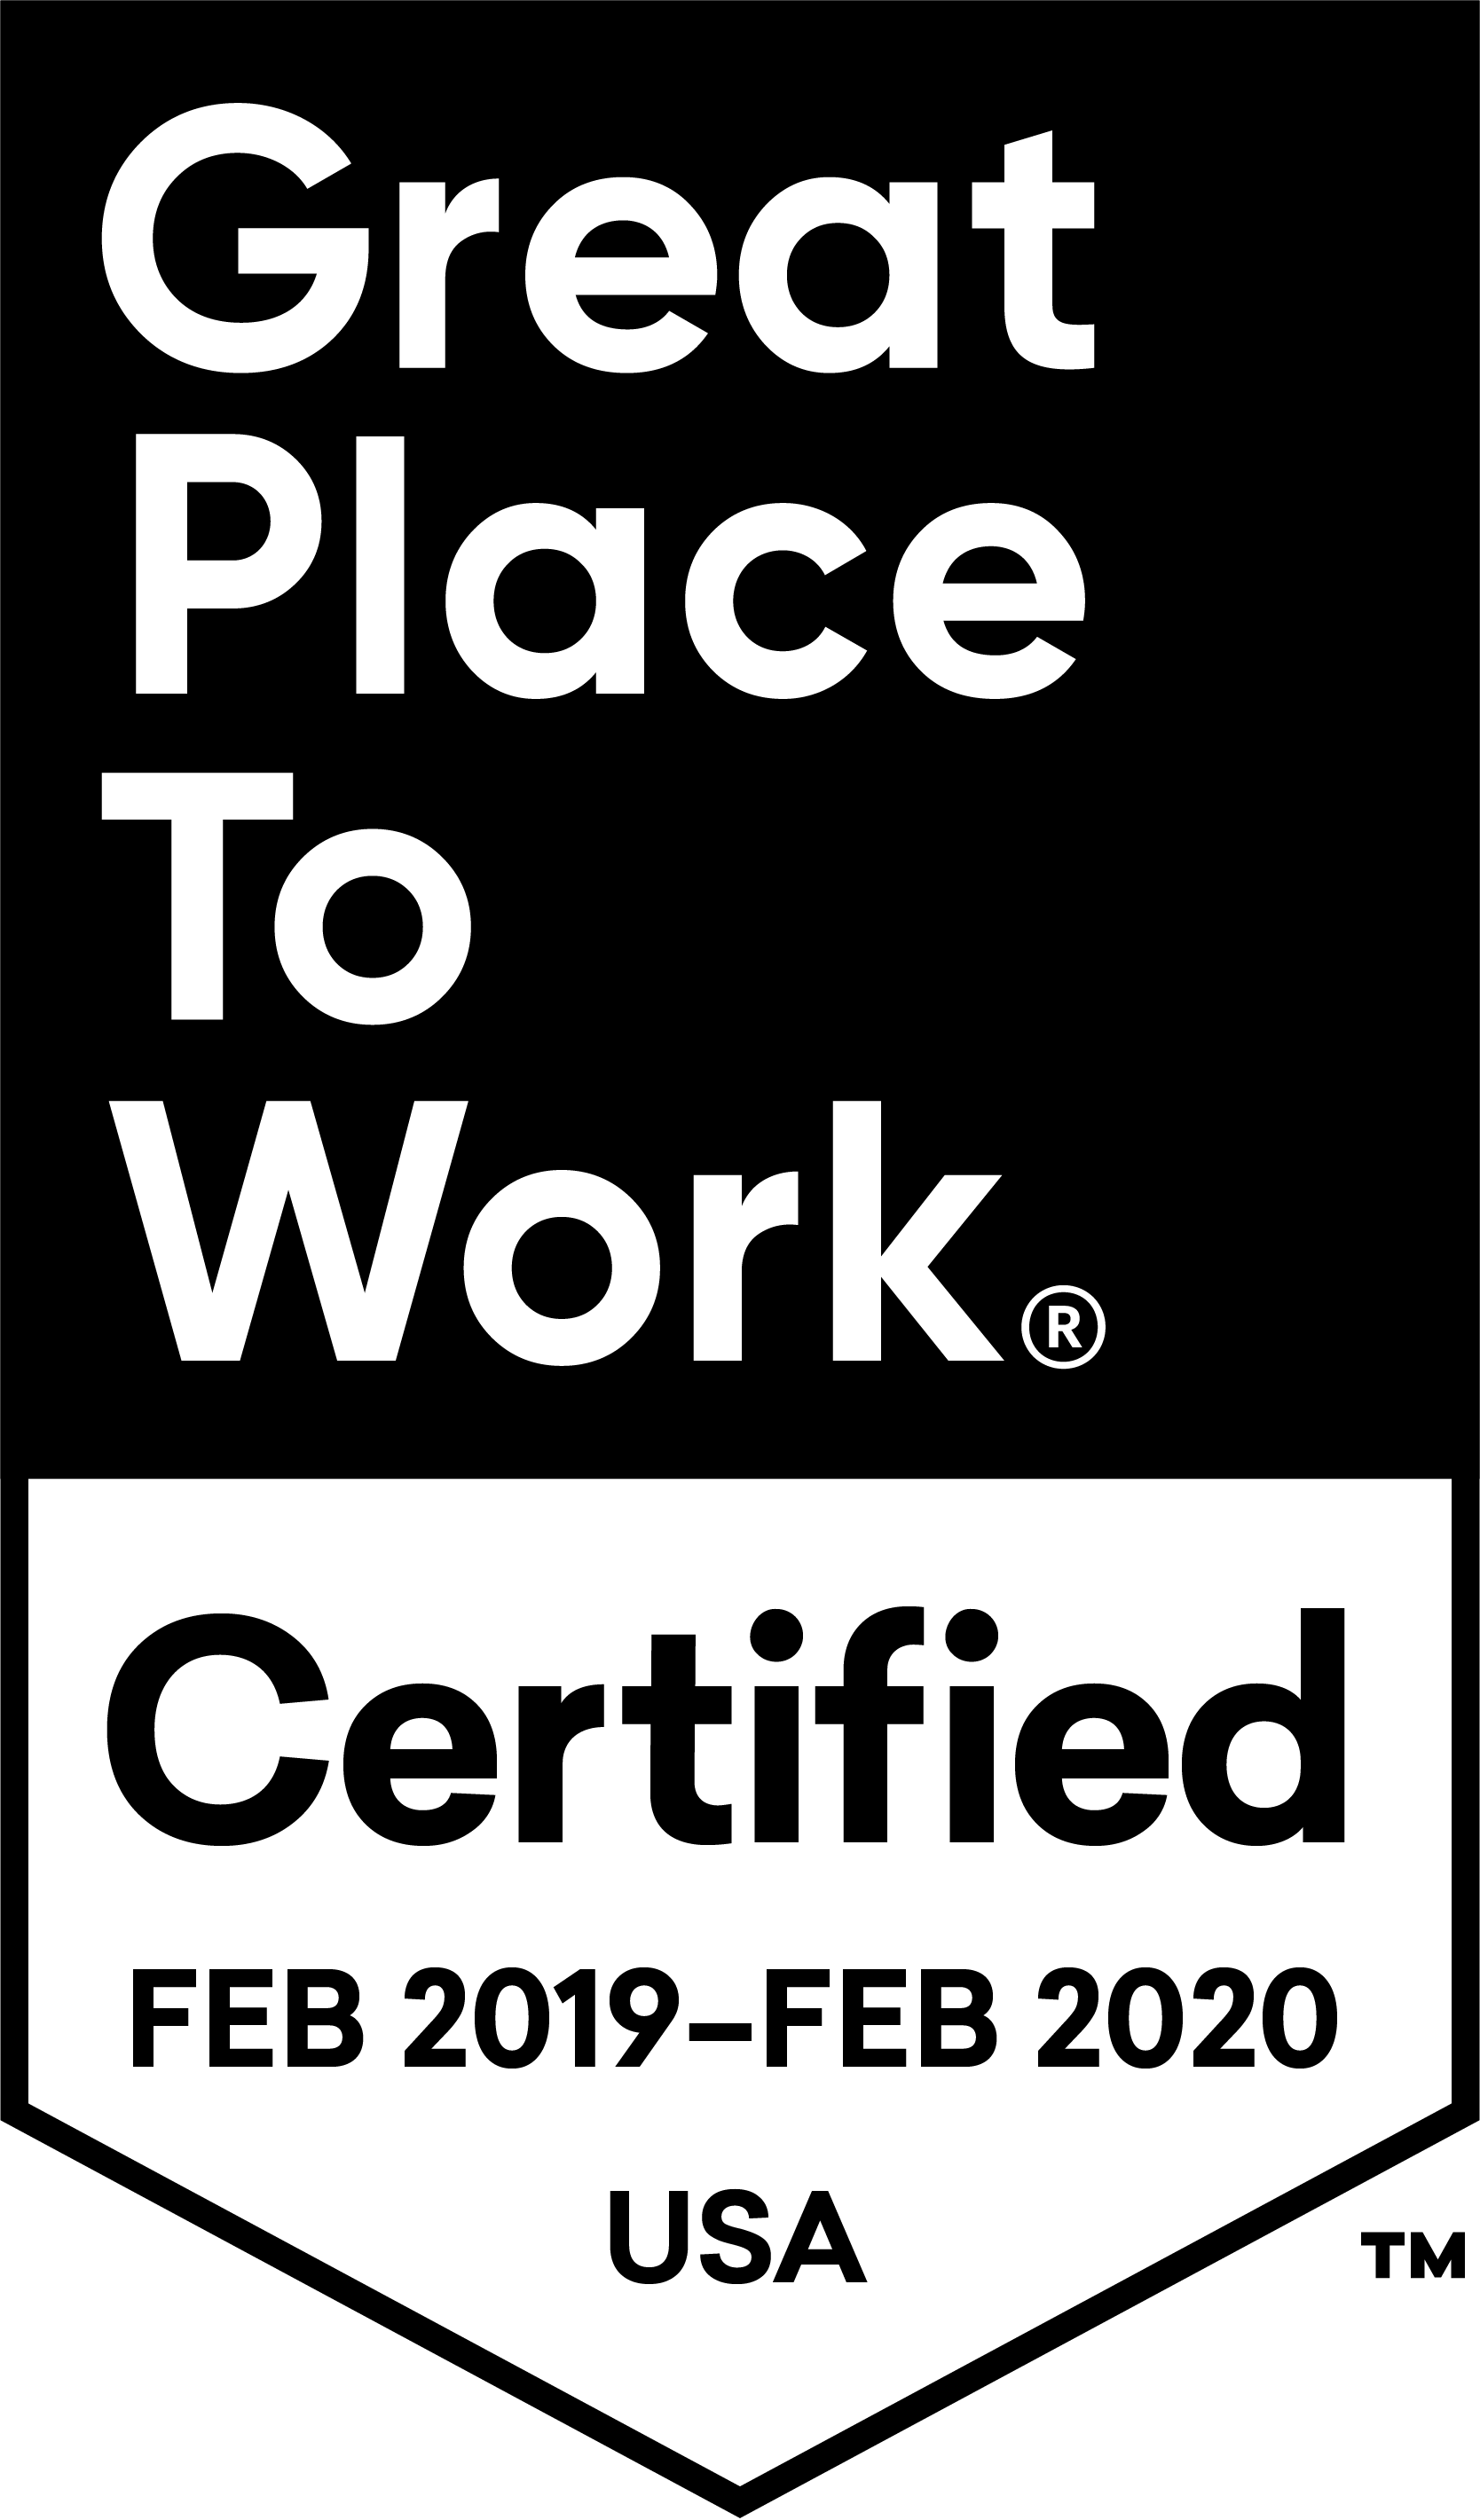 Great Place to Work Certified February 2019 - February 2020